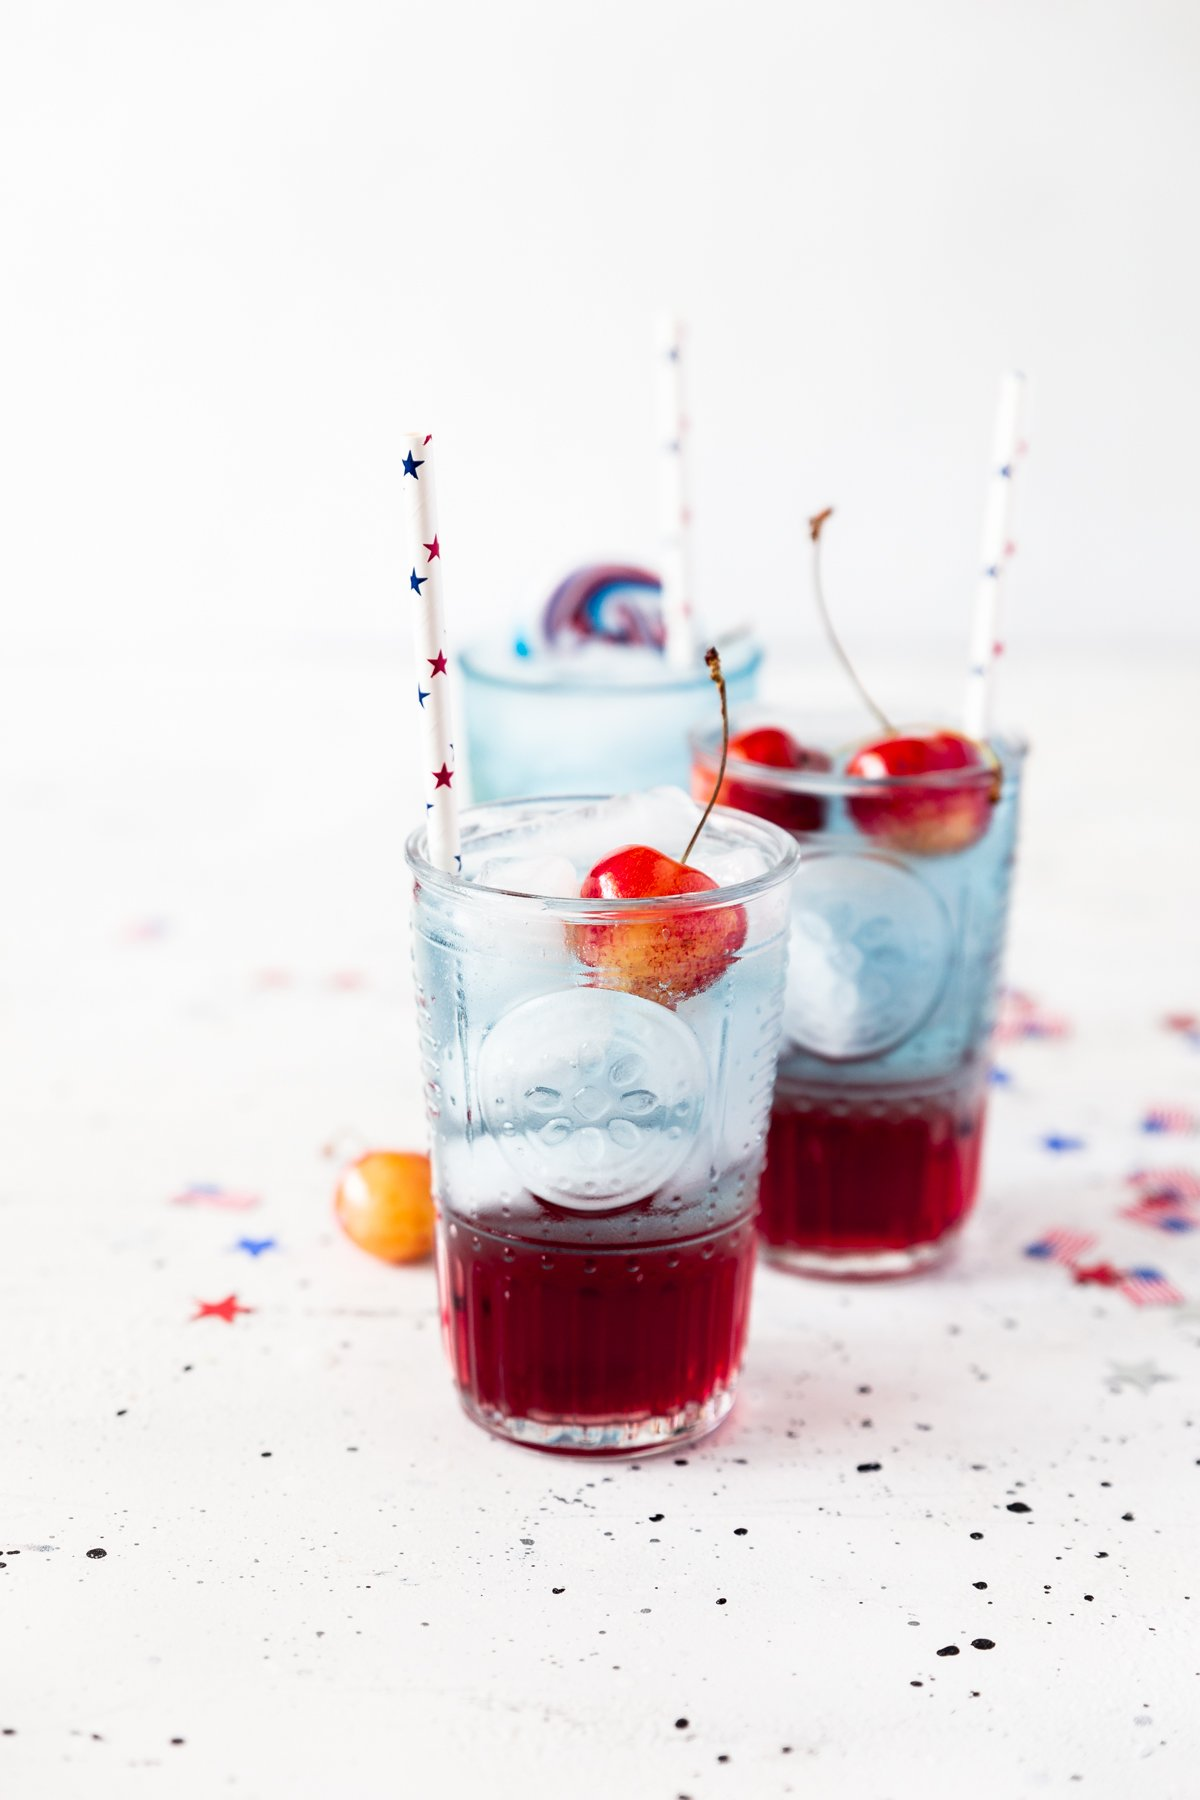 three glasses of cherries jubilee cocktail, red on bottom, blue on top, with fresh cherries, white paper straws with red and blue stars